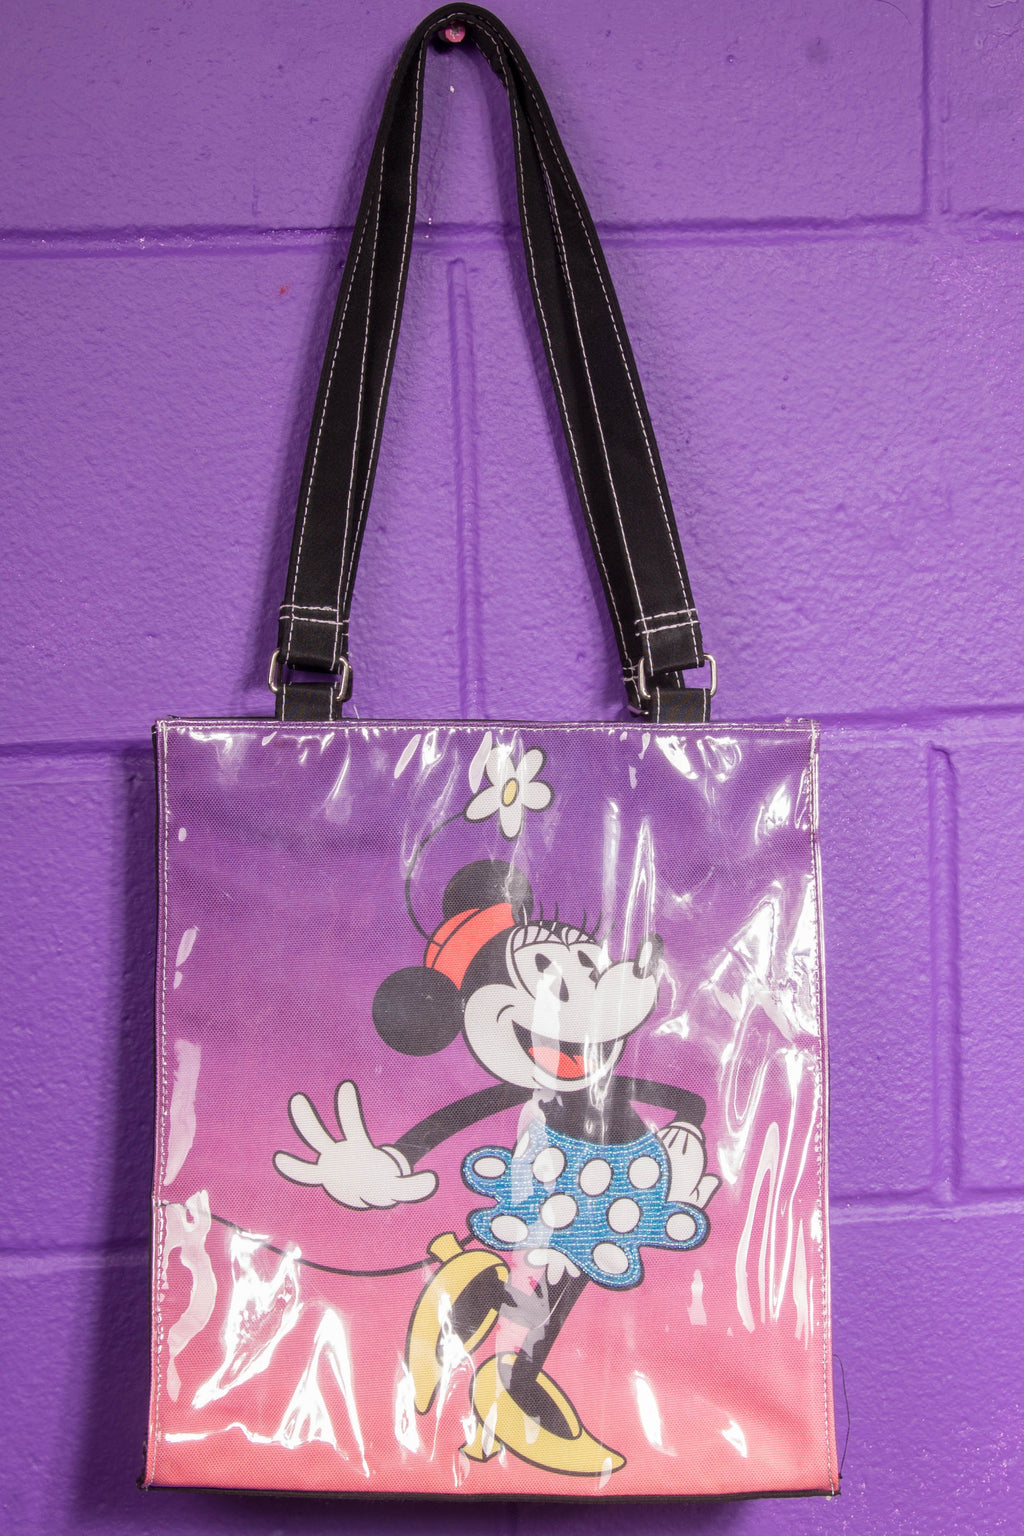 00's Minnie Mouse Handbag